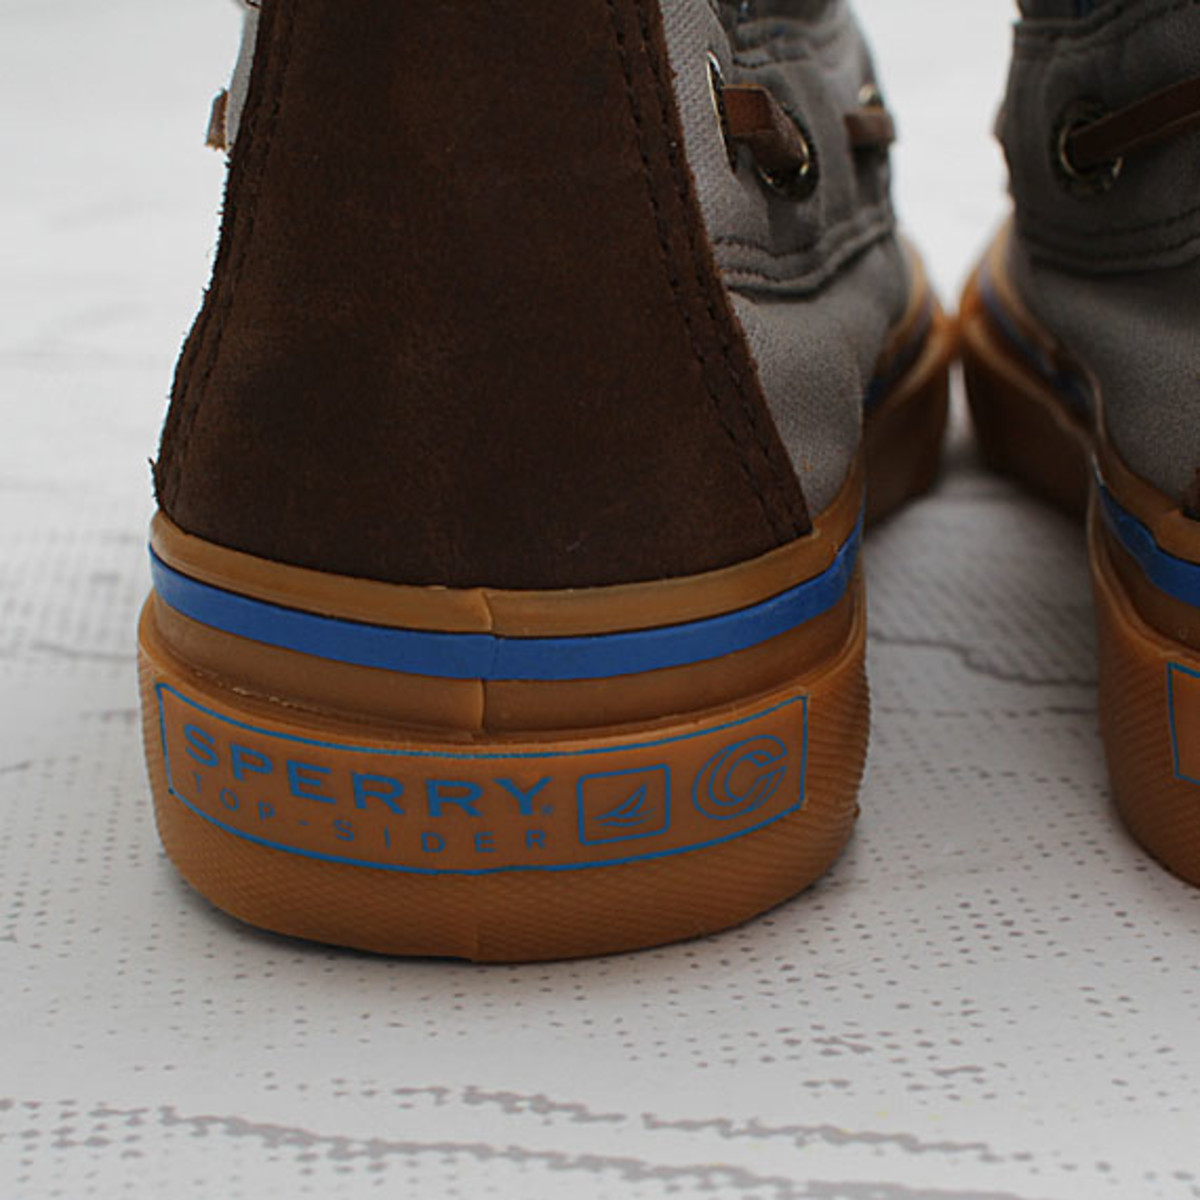 concepts-sperry-top-sider-bahama-boot-fall-2012-06